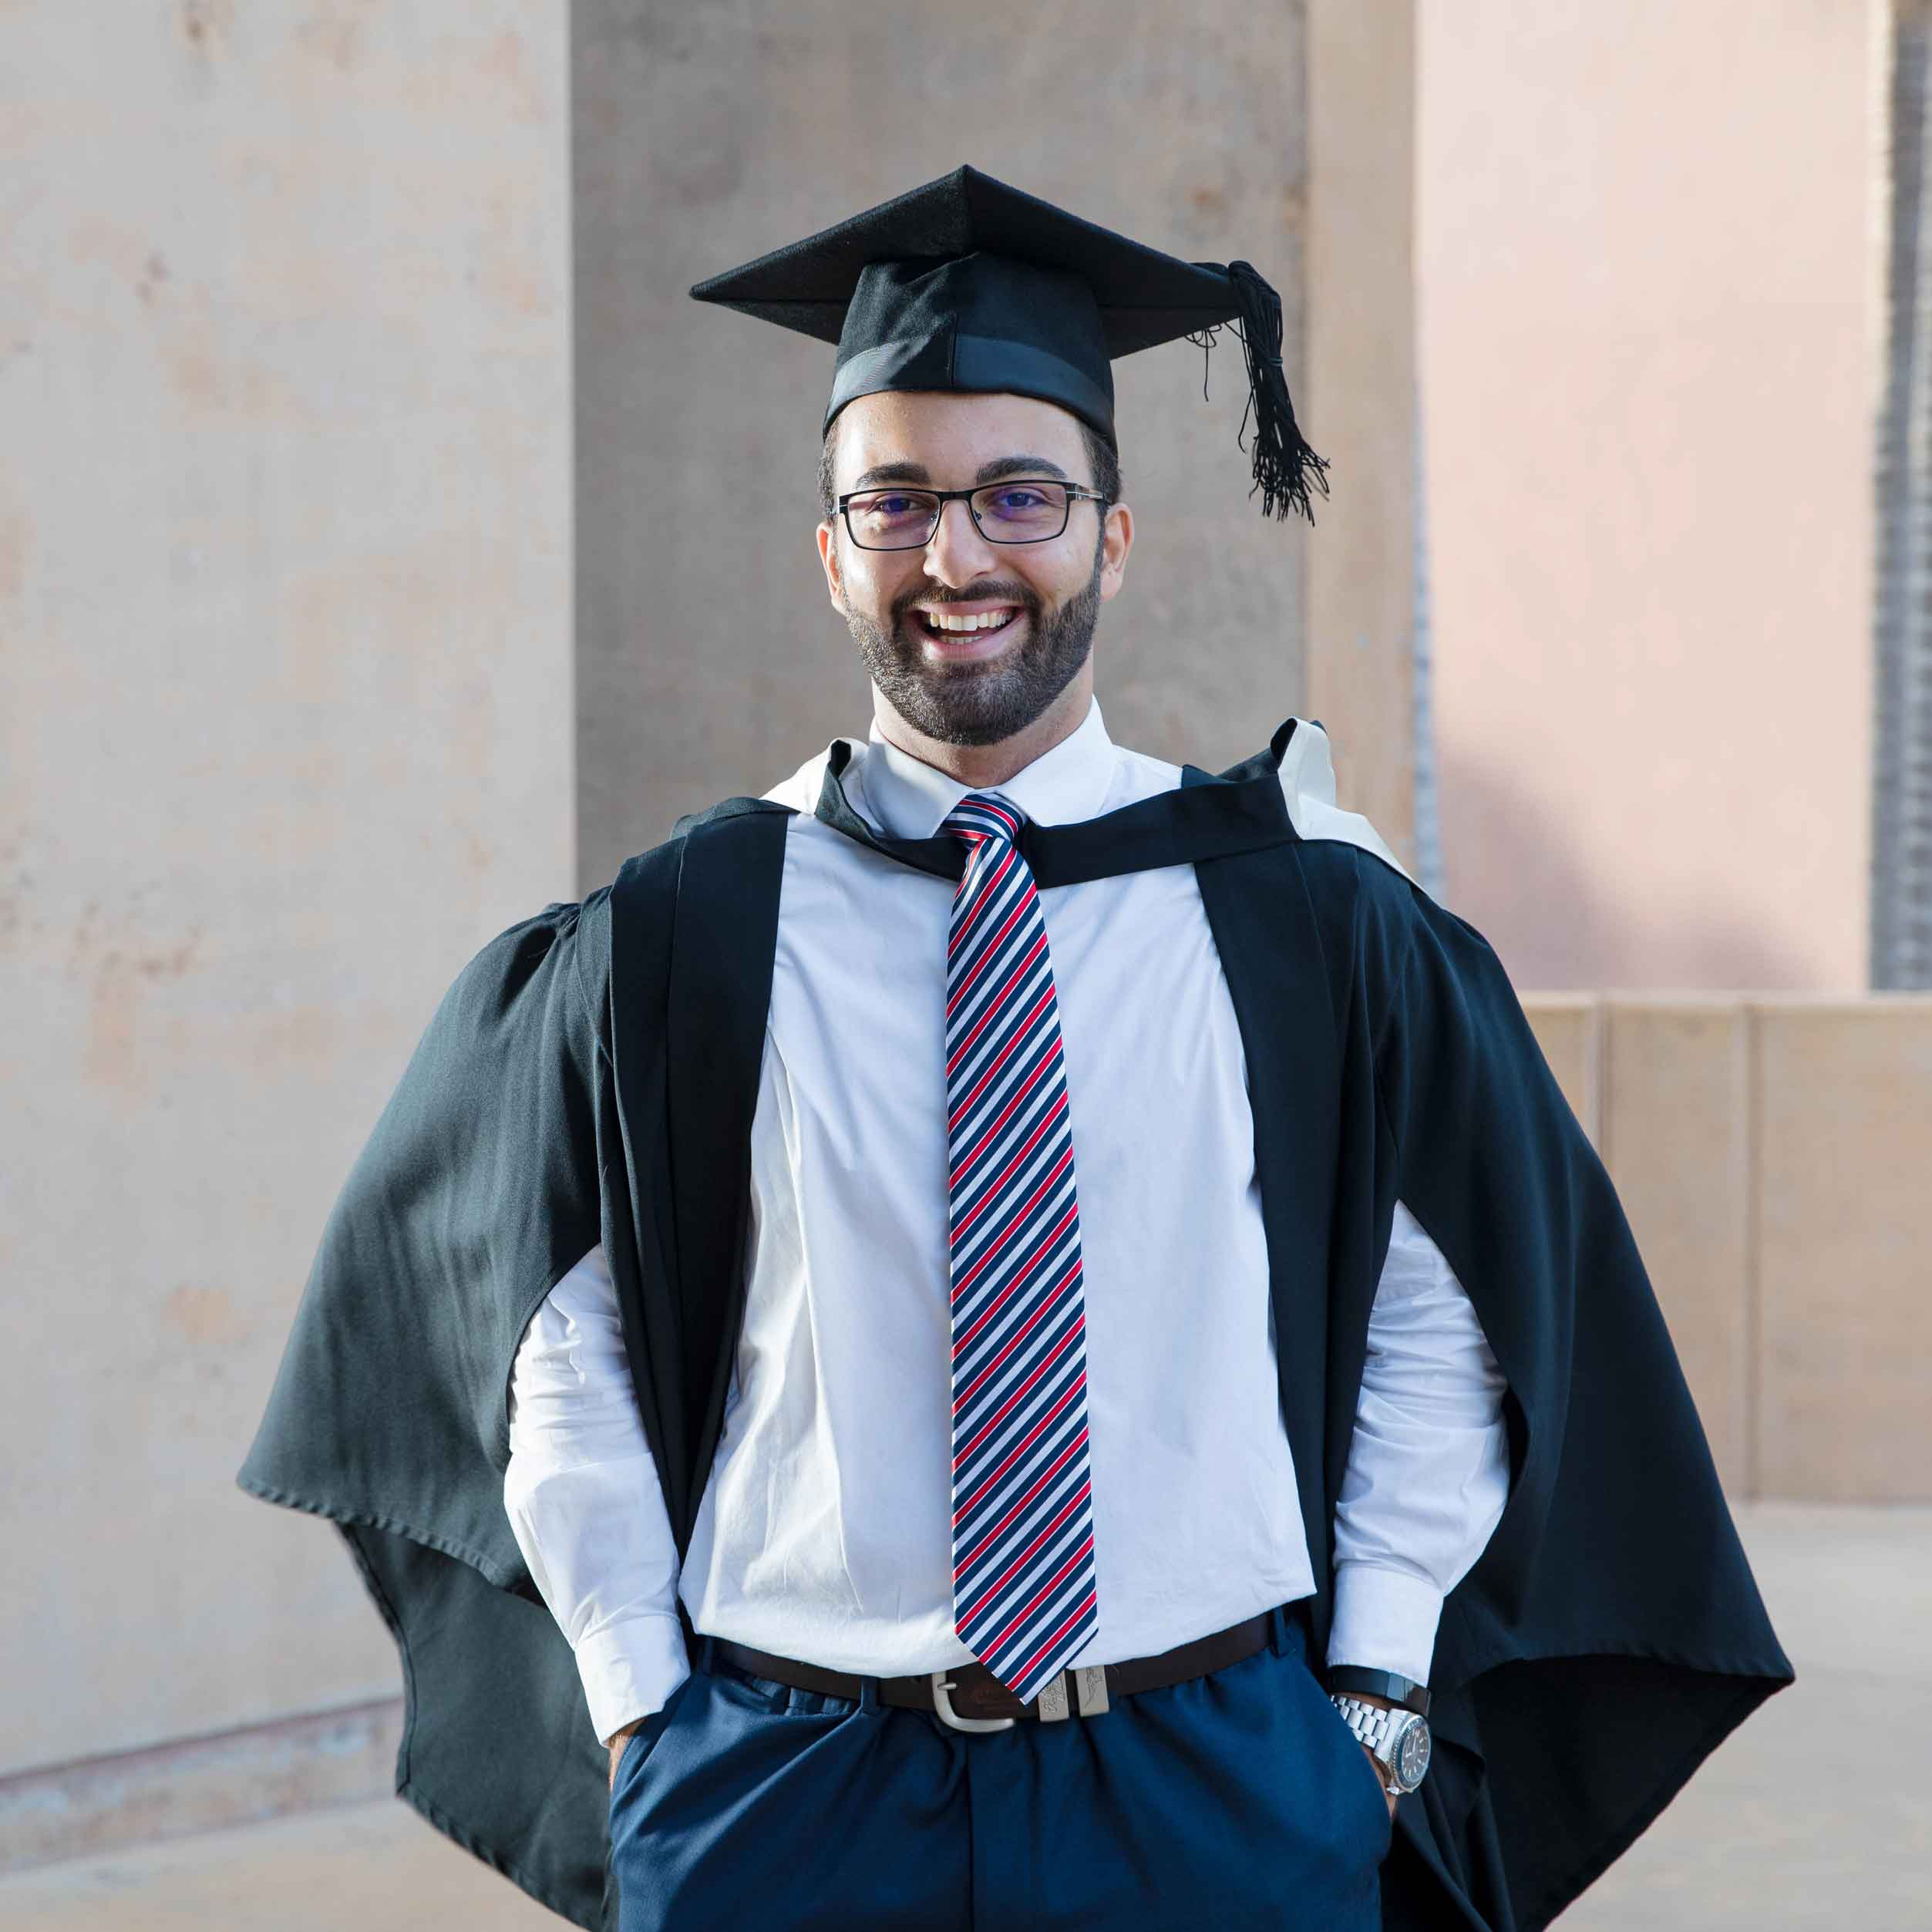 This is an image of 2019 graduate Manny George